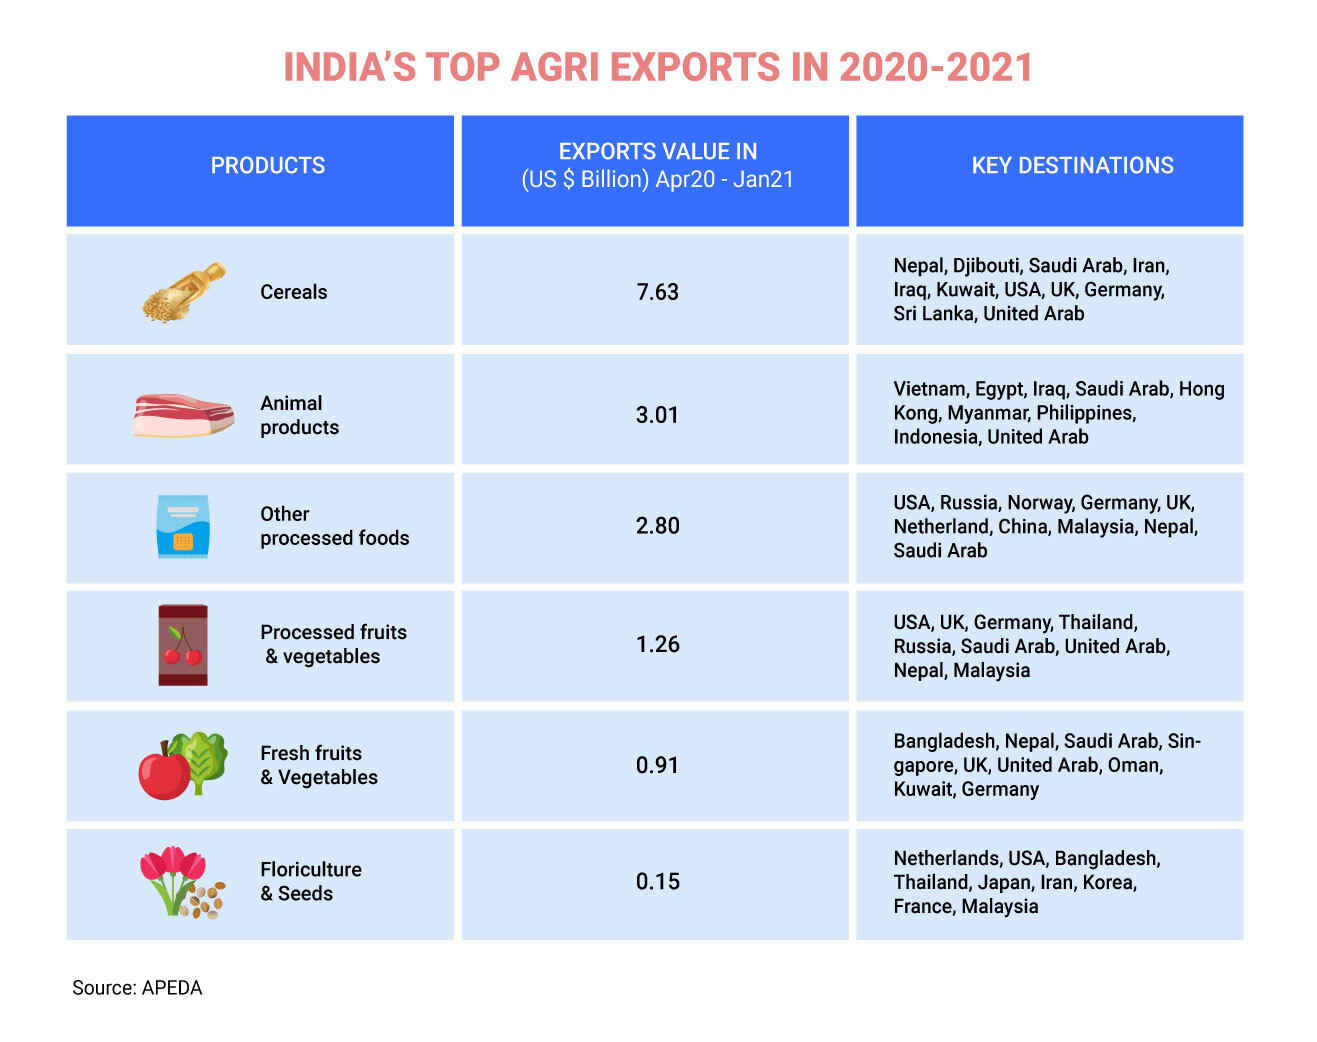 India's Top Agricultural exports in 2020-2021